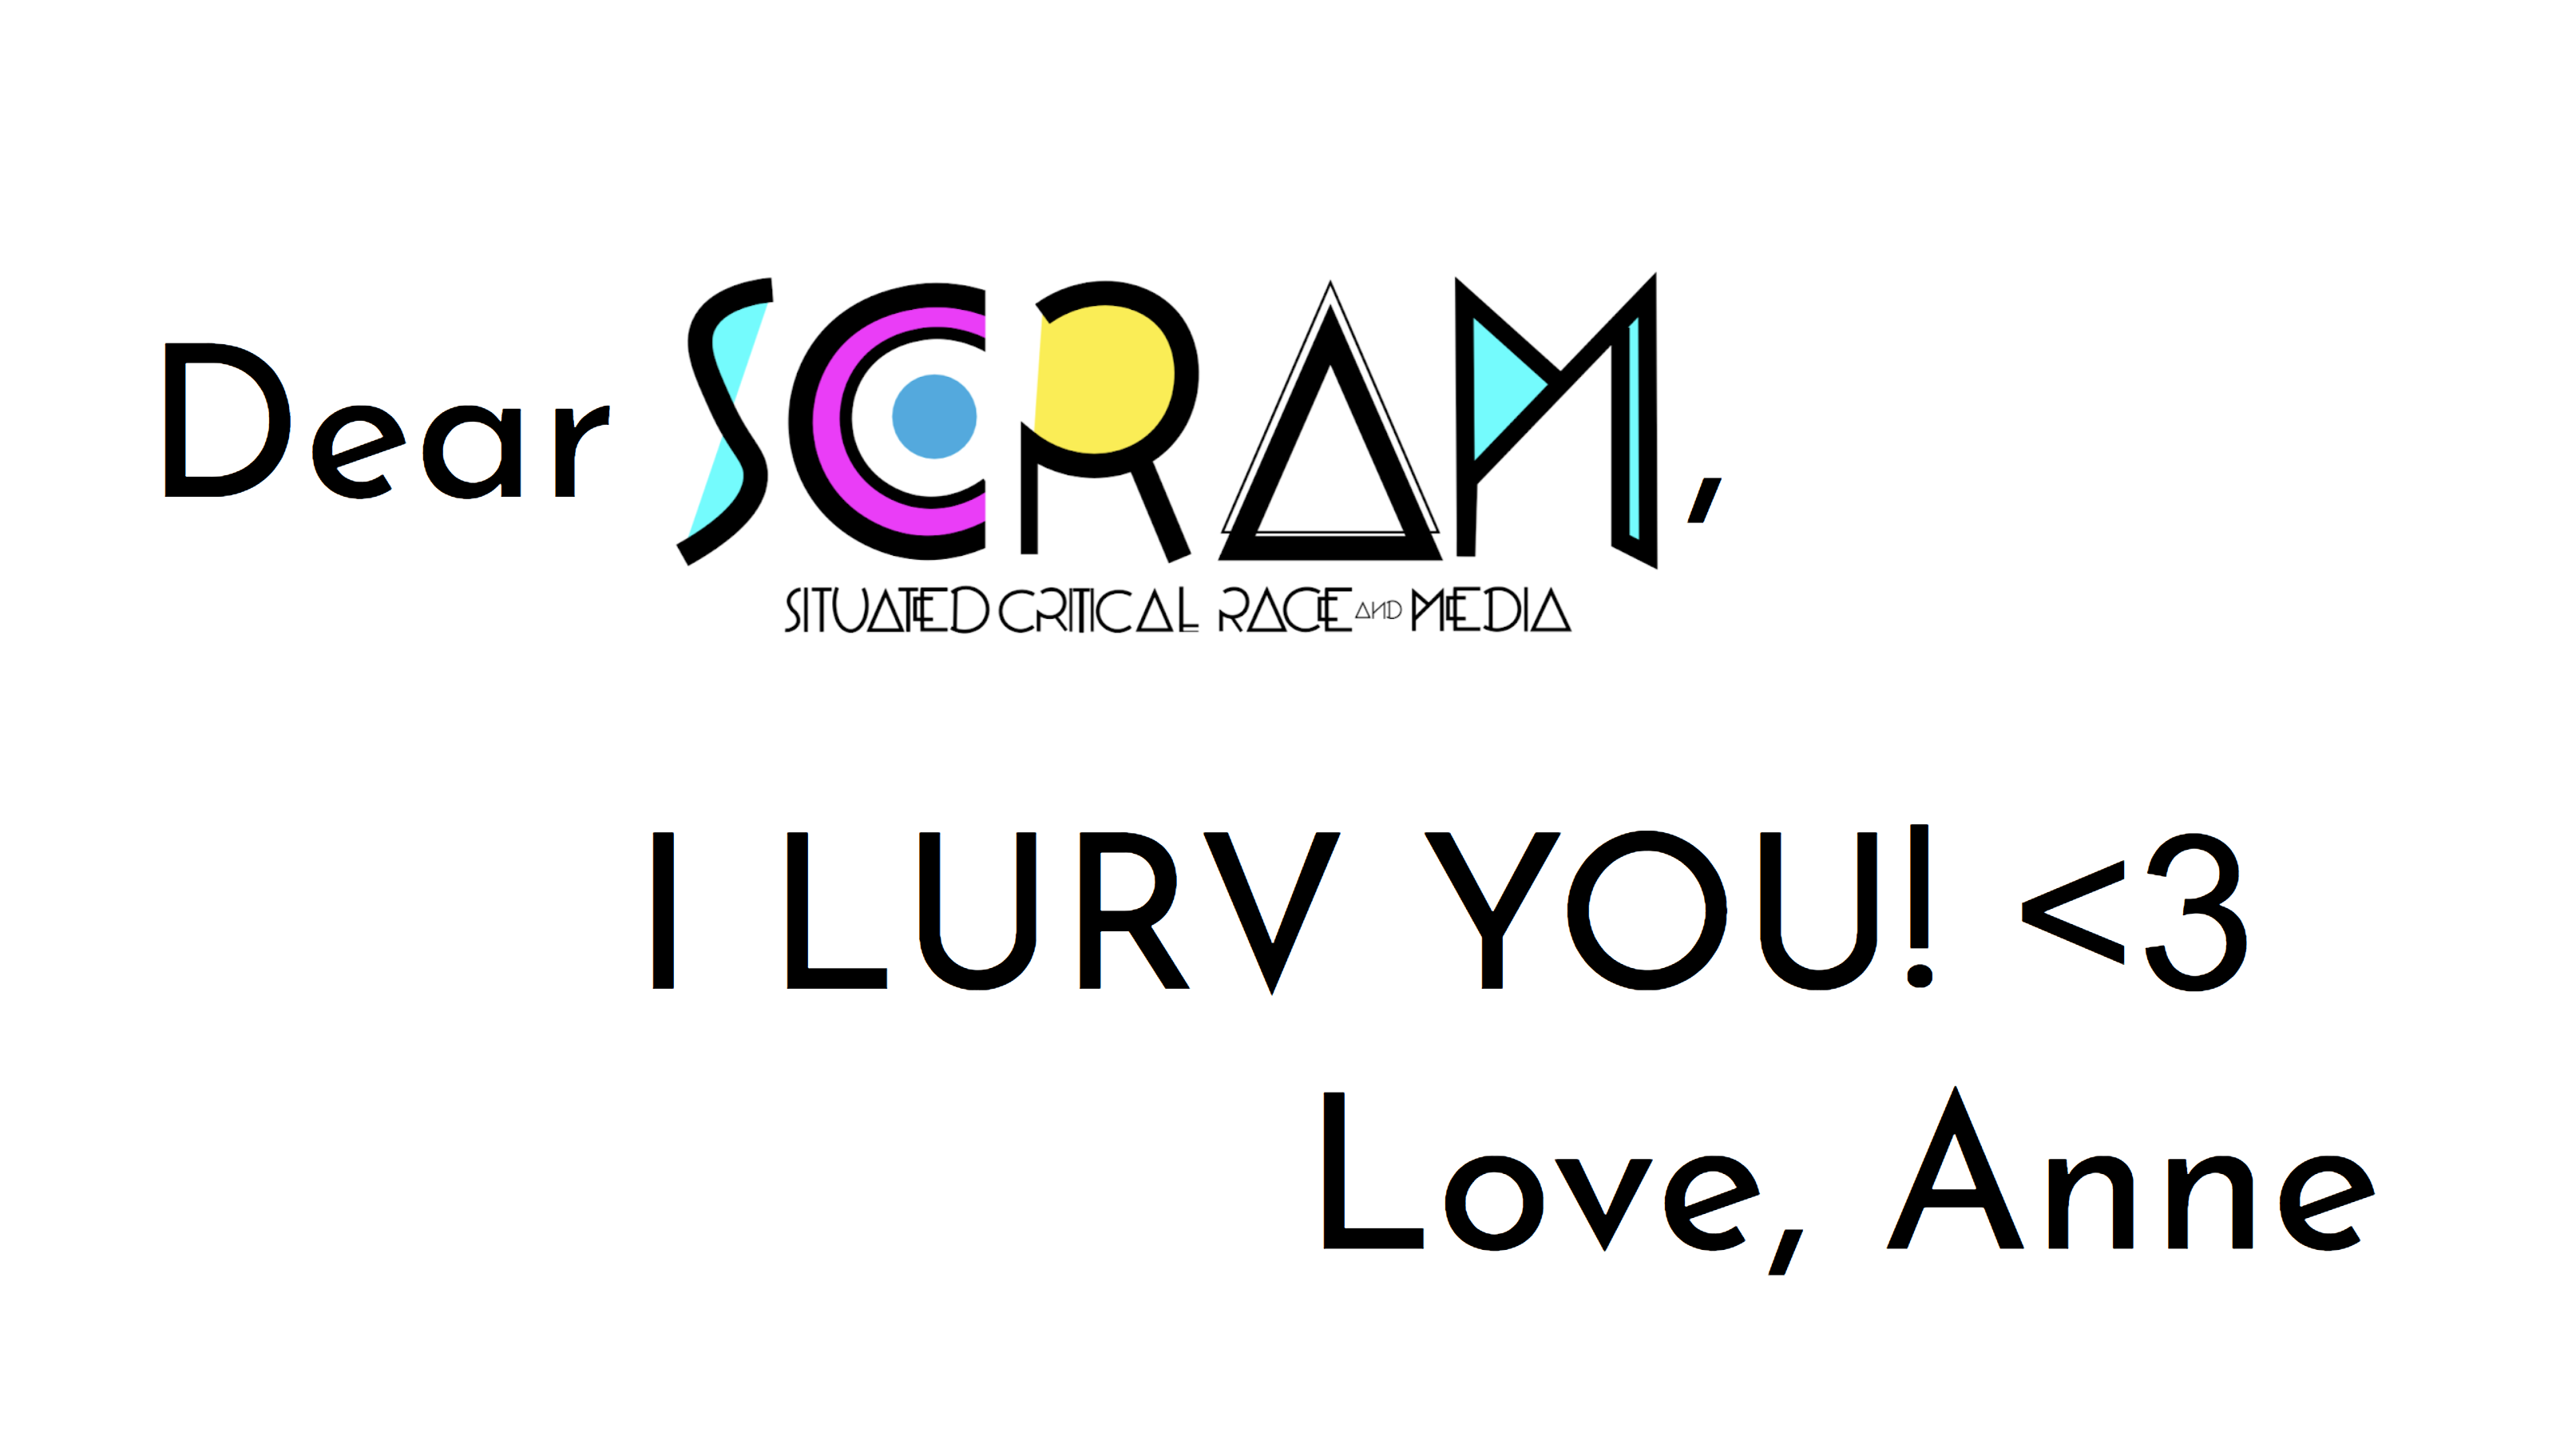 Image with text that reads: Dear SCRAM I LURV You! heart emoji Love, Anne